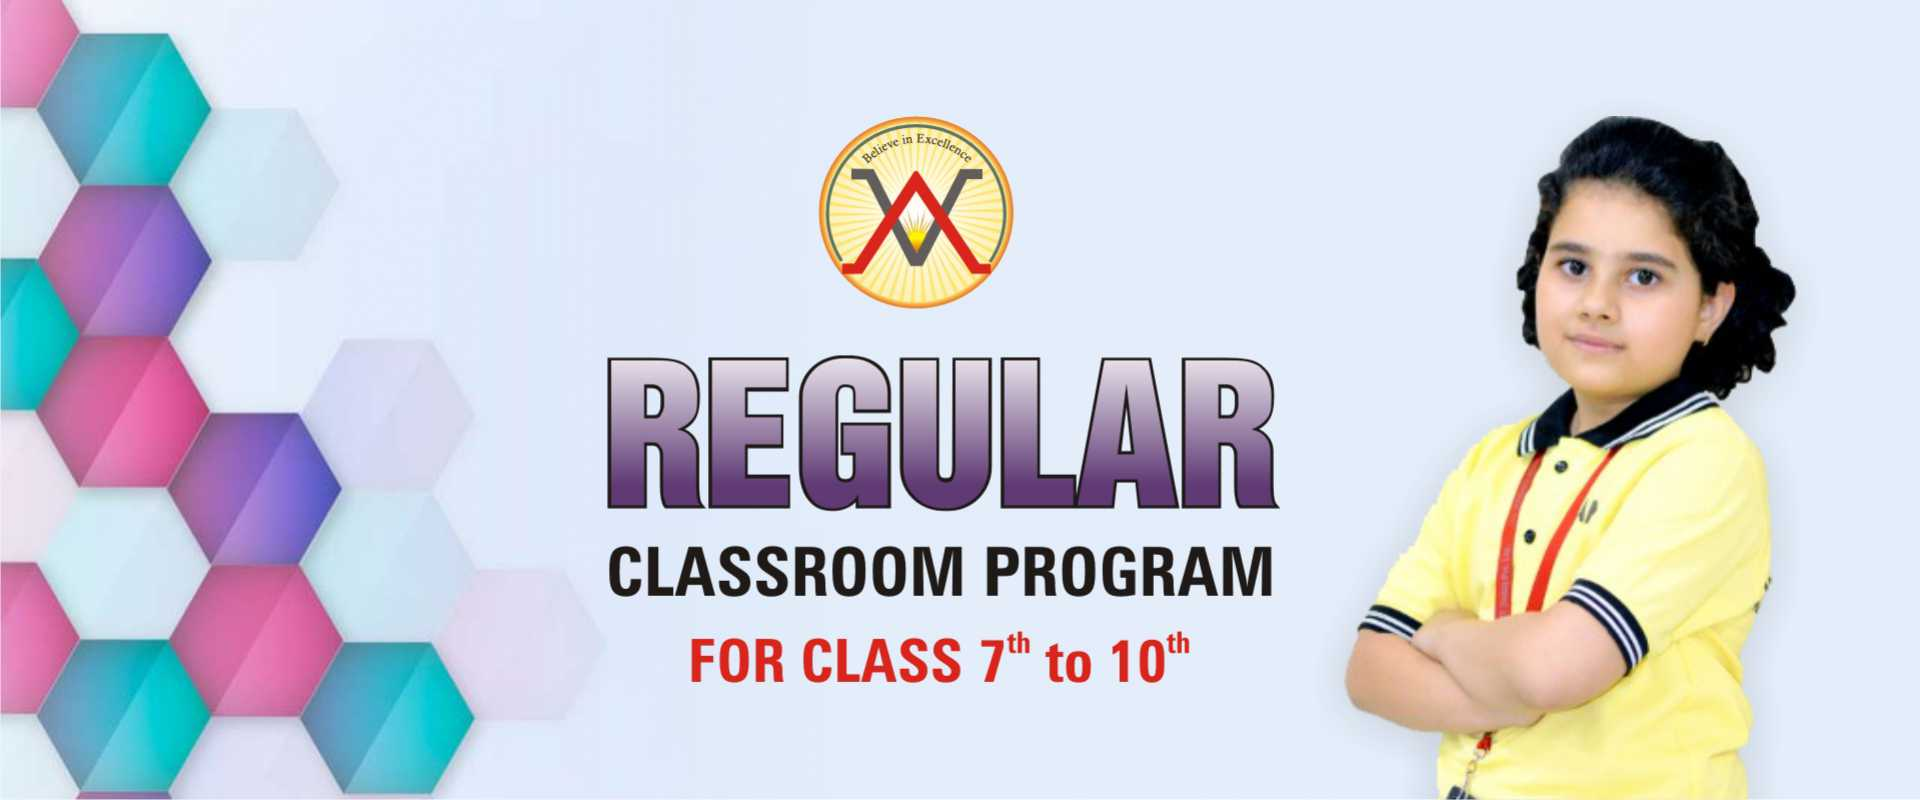 Regular Classroom PROGRAM